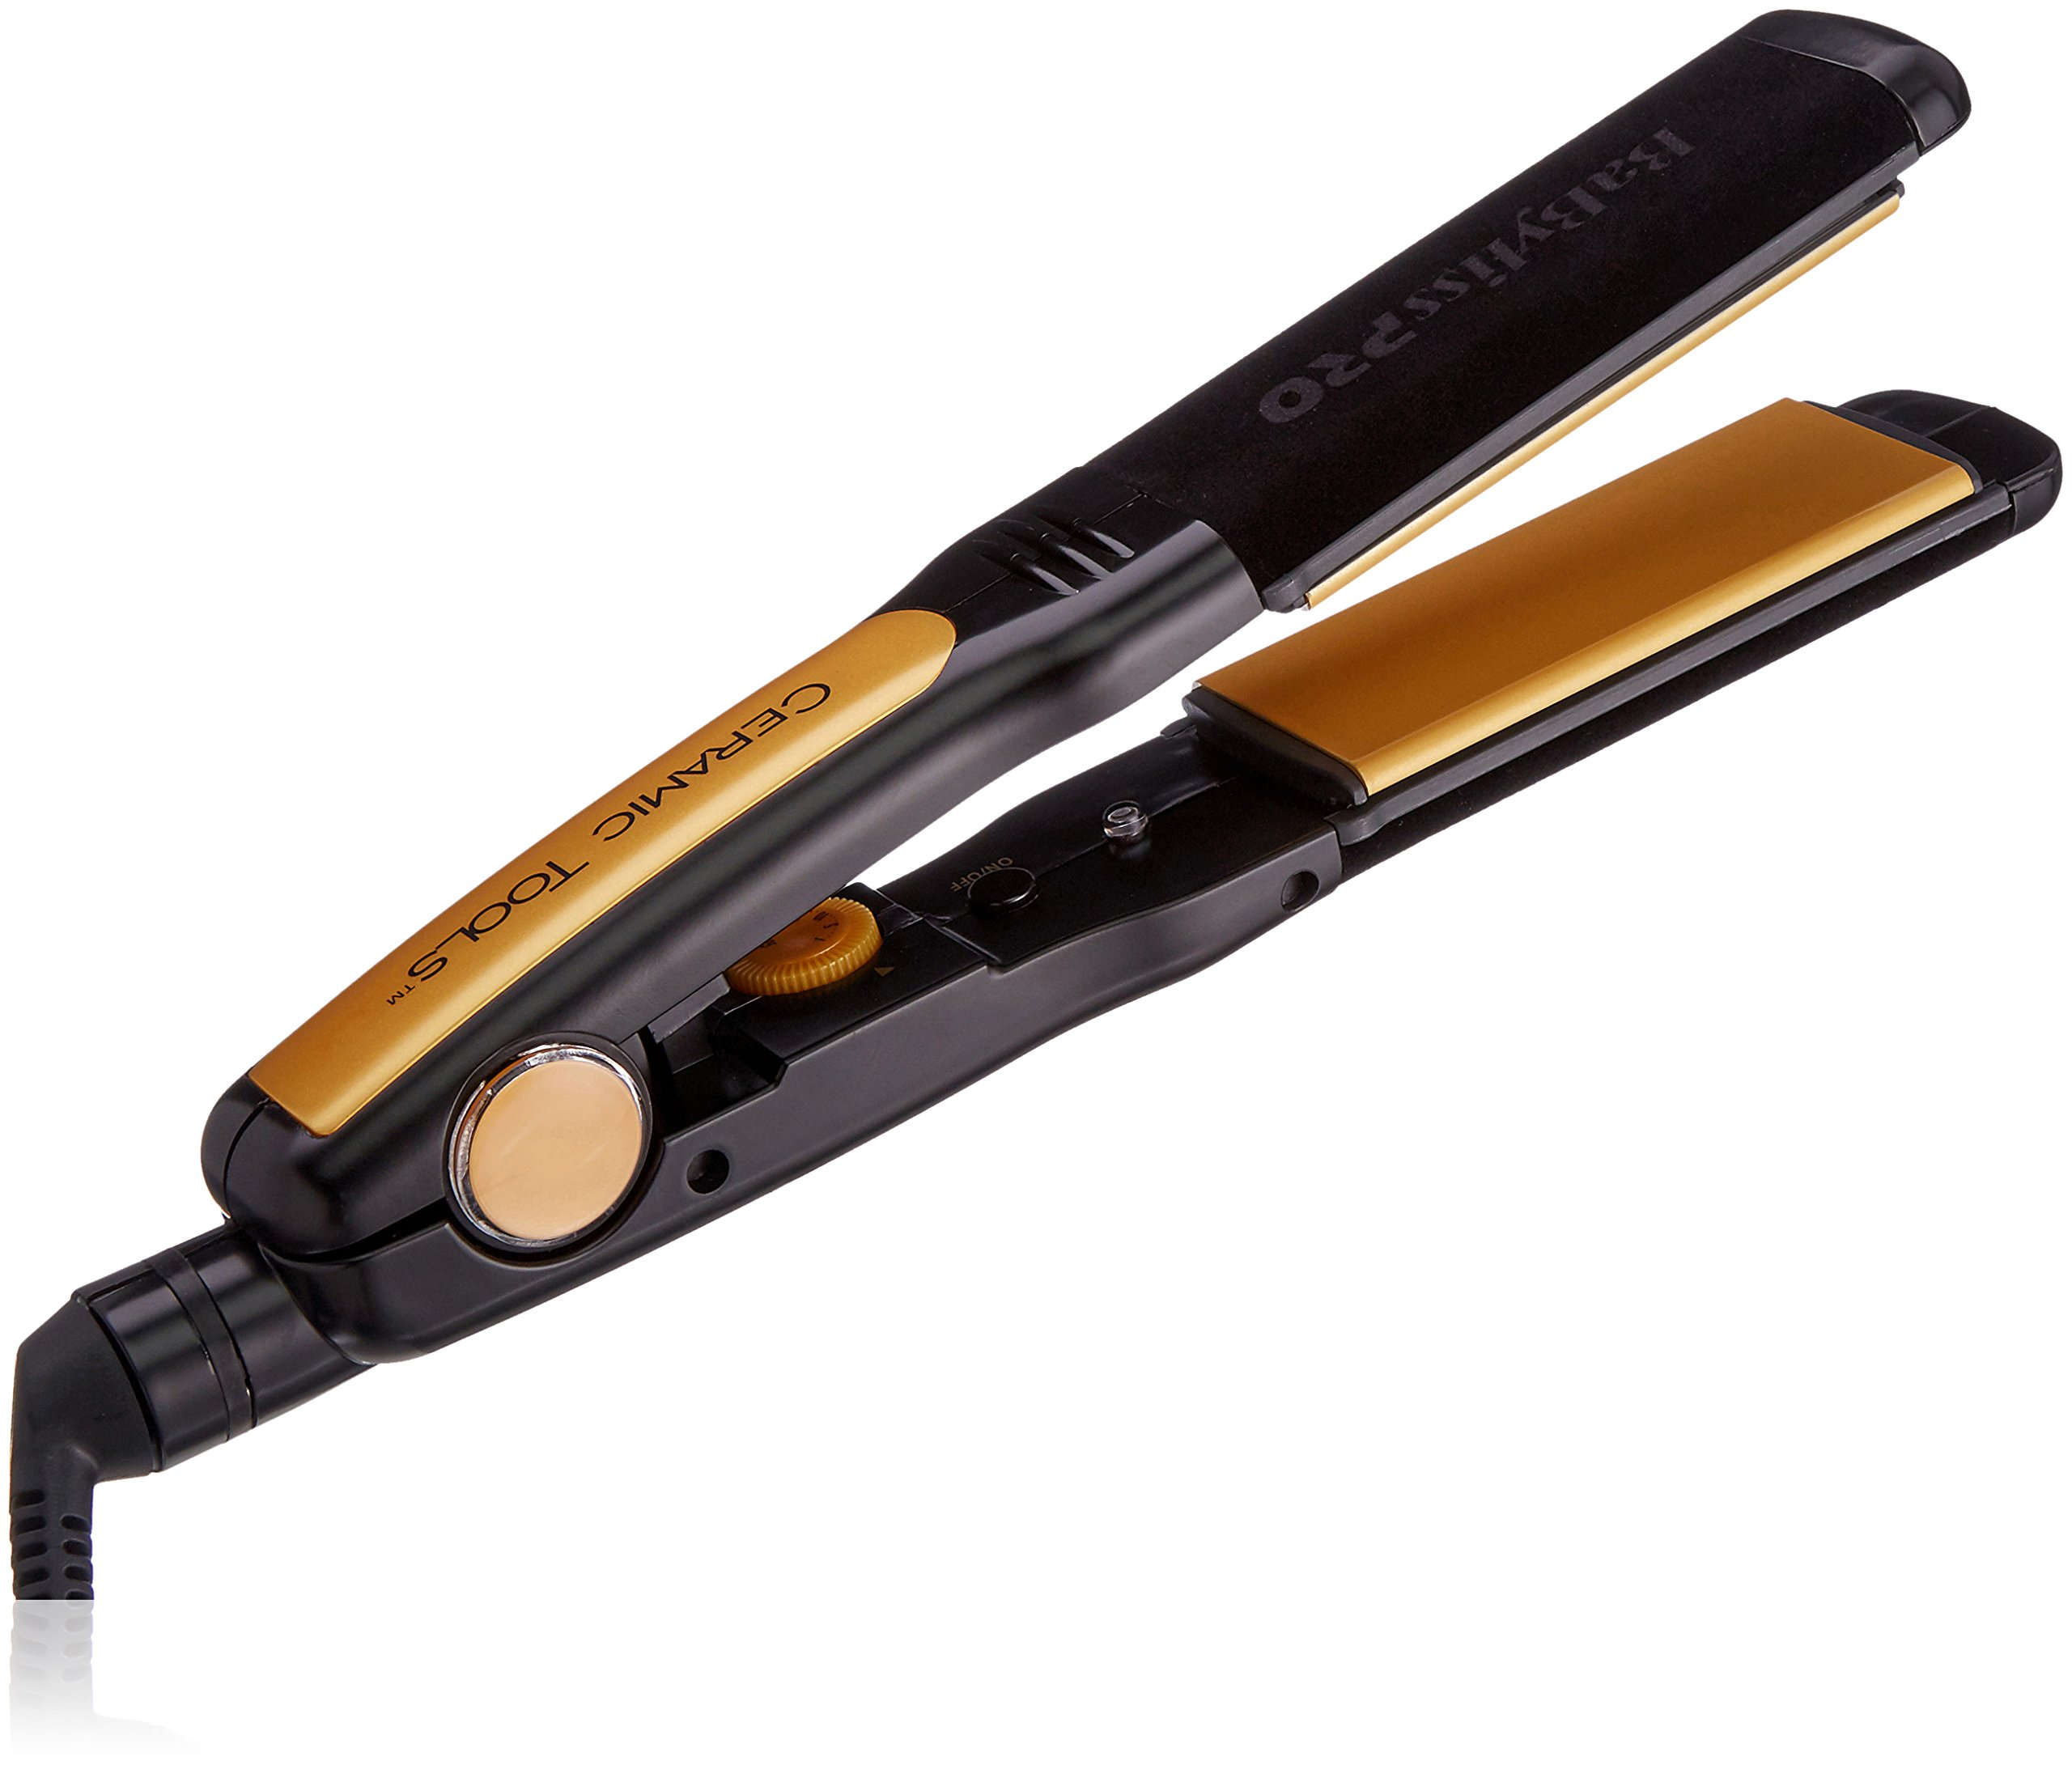 BaBylissPRO Ceramic Tools Straightening Iron - 81pMoYtRNrL - BaBylissPRO Ceramic Tools Straightening Iron